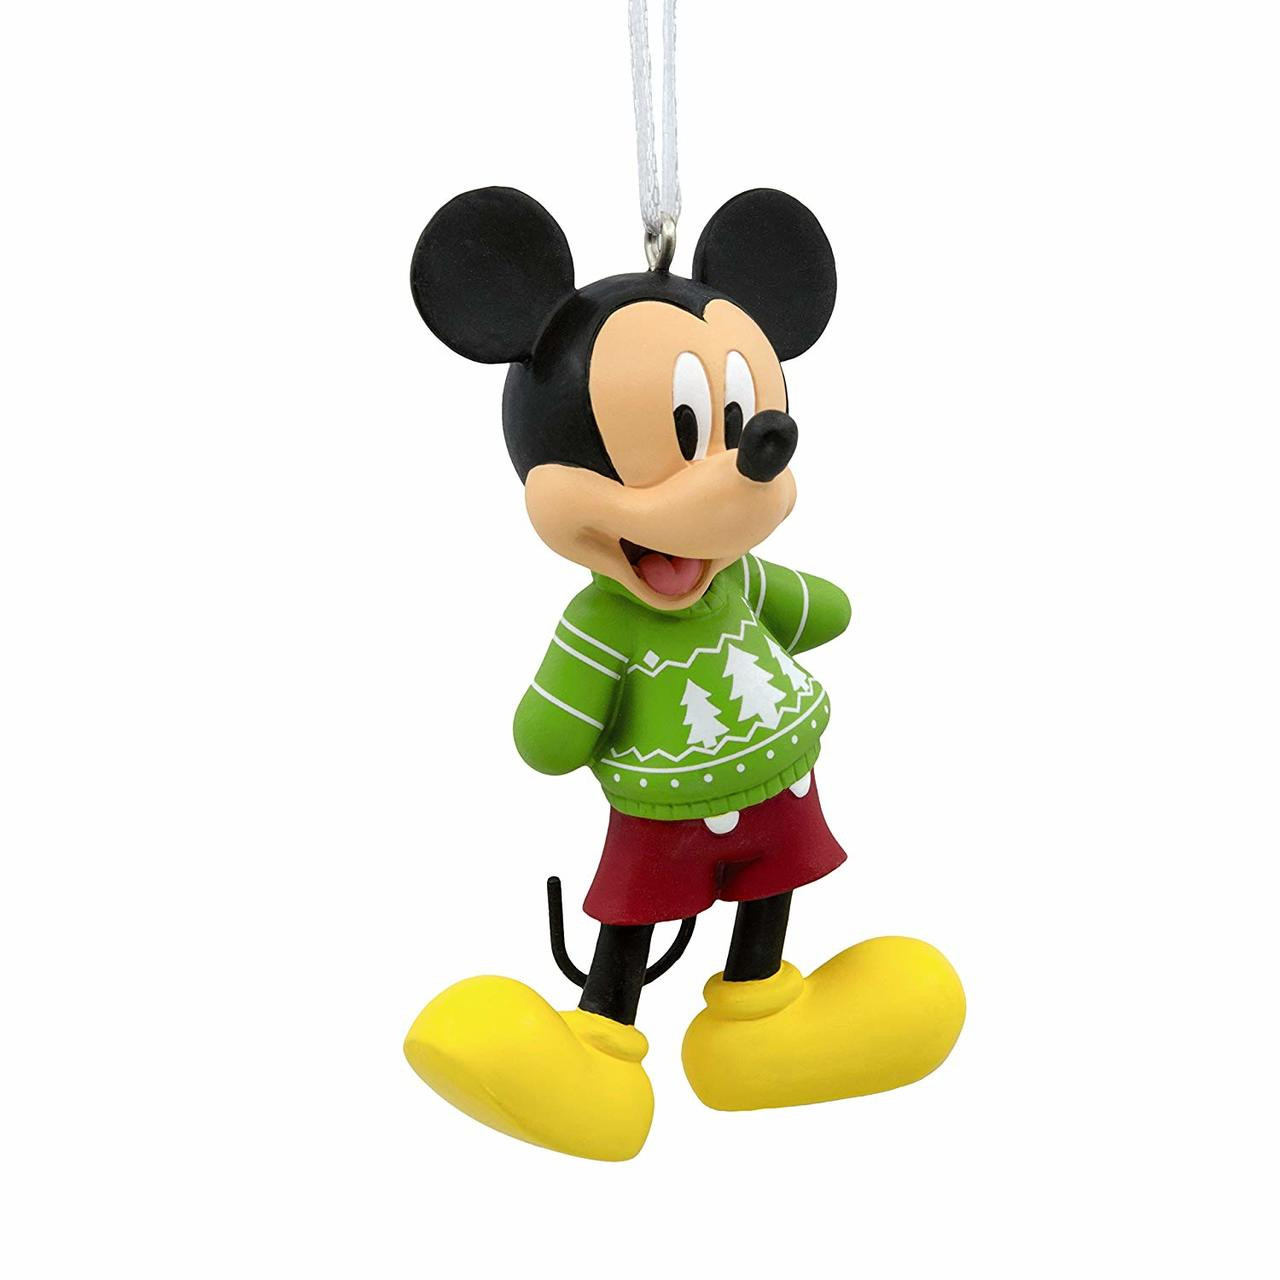 Hallmark Ornament Disney Mickey Mouse Christmas Sweater